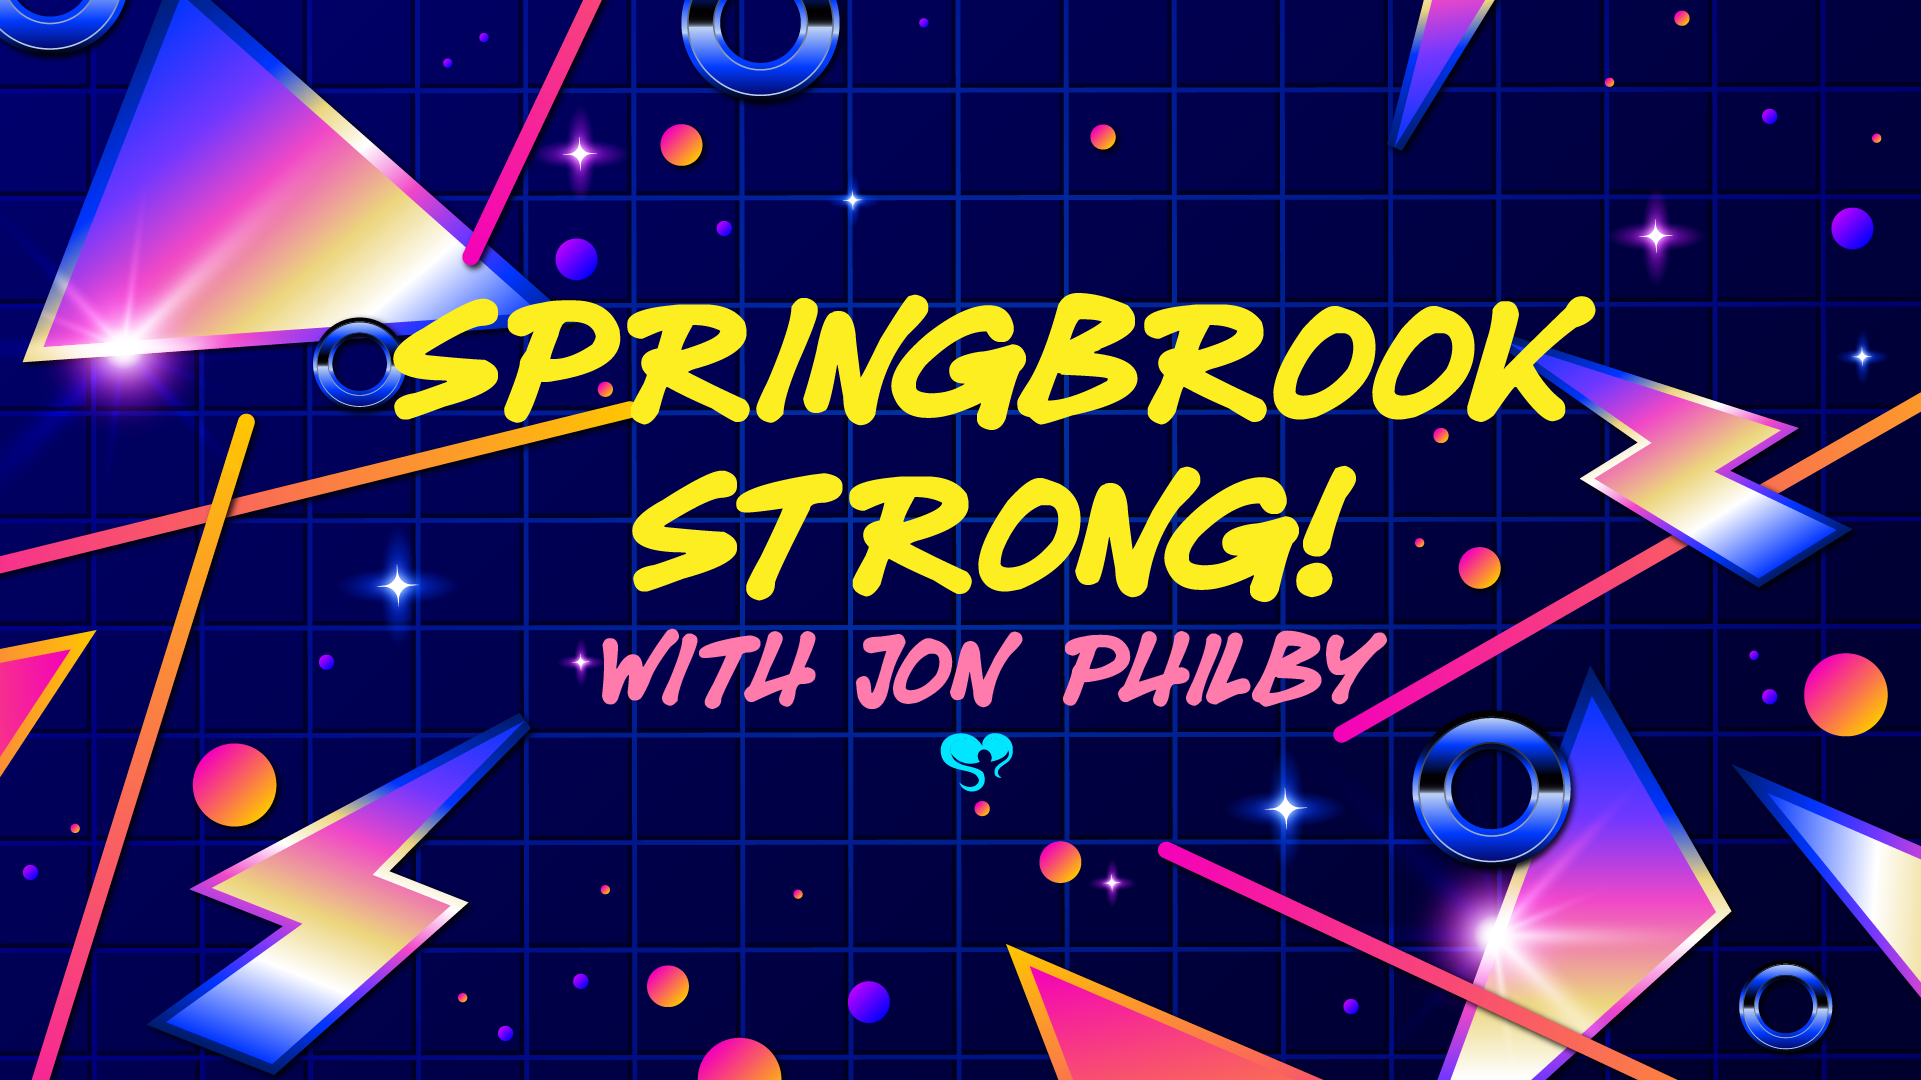 Title Card for SBS videos with Jon Philby